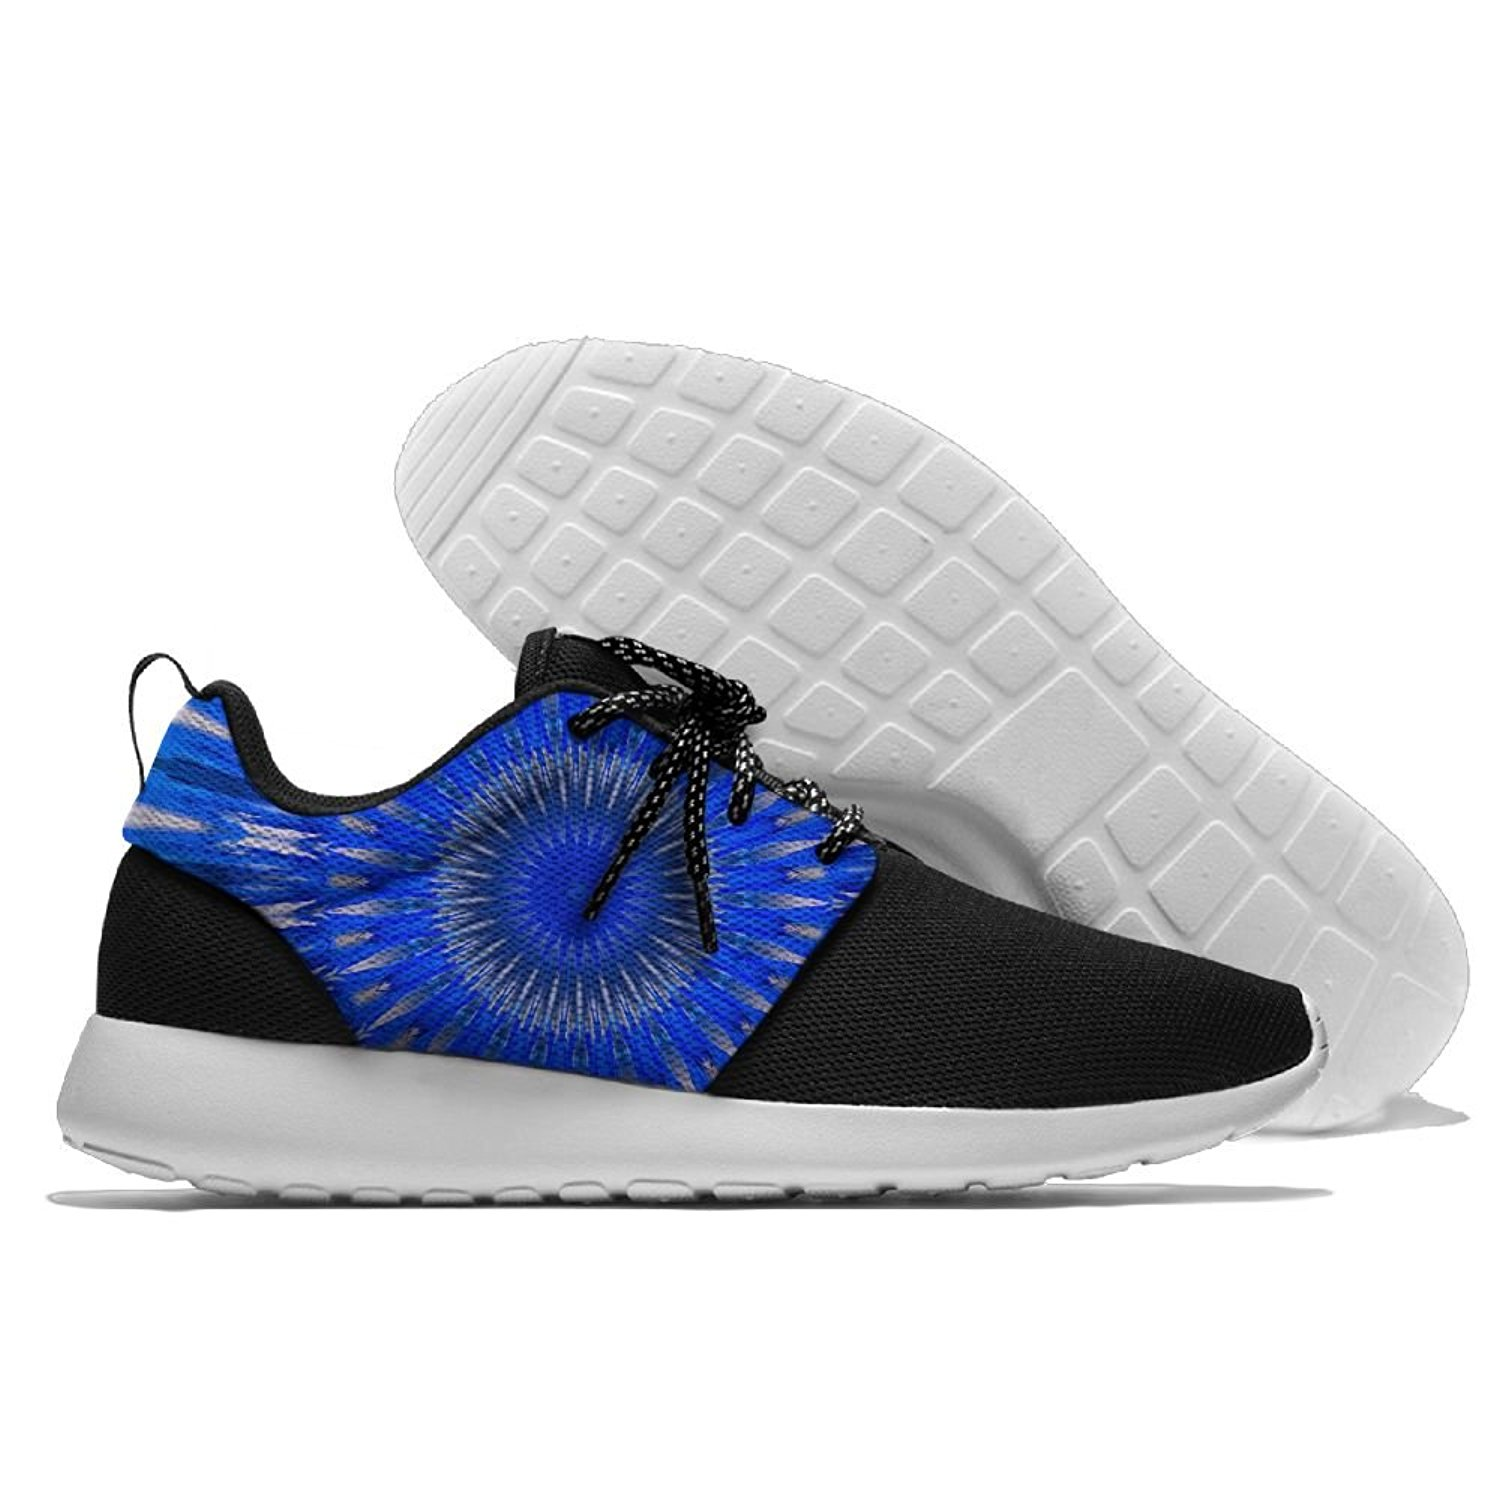 online store 0cfe3 75462 Get Quotations · Men Women Gym Shoes Athletic Sneakers Blue Feather Circle  Mesh Training Shoes Running Shoes